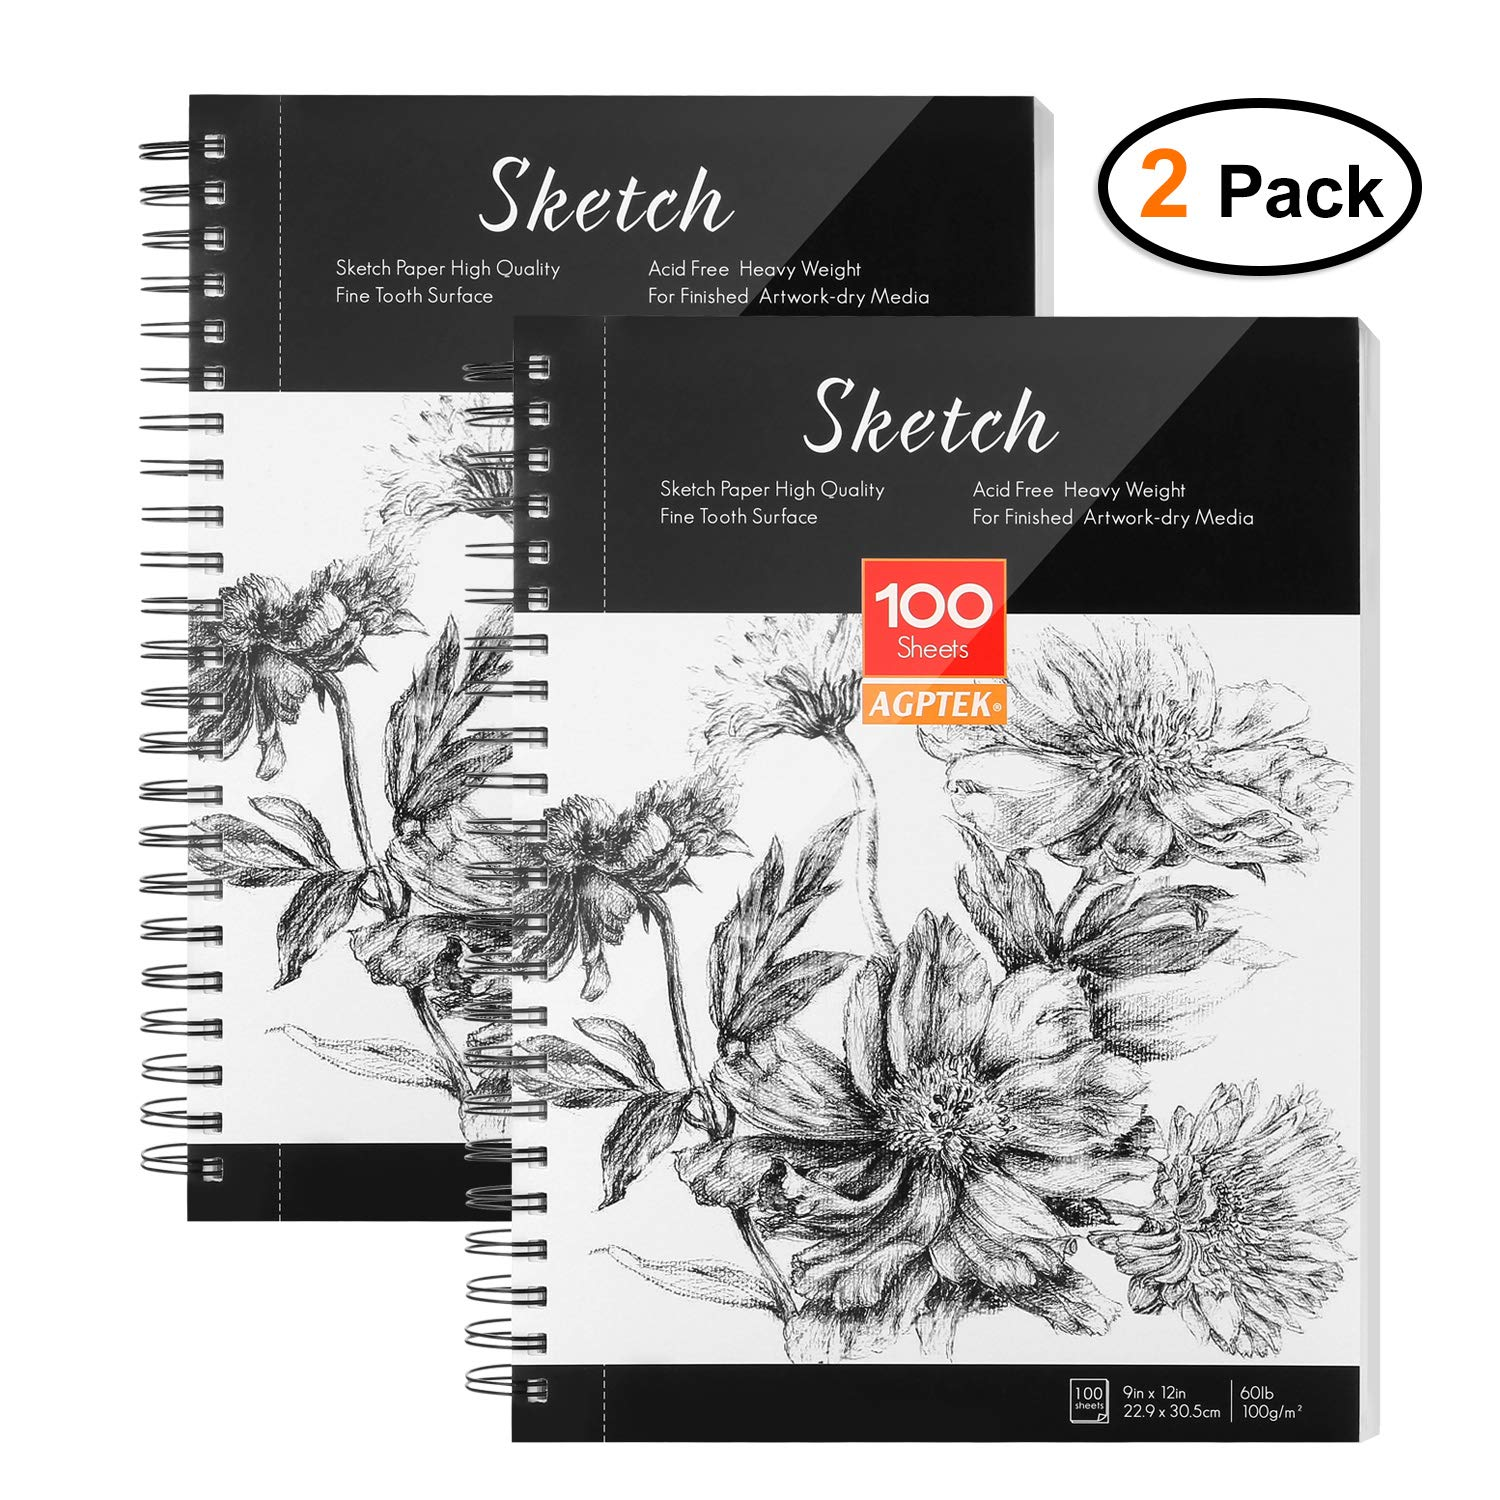 Sketch Book, AGPTEK Art Sketch Book 9''X12'', 2 Packs (68lb/100g), Spiral Bound with Easy-to-Remove Pages, Great for Artists, Writers & Illustrators by AGPTEK